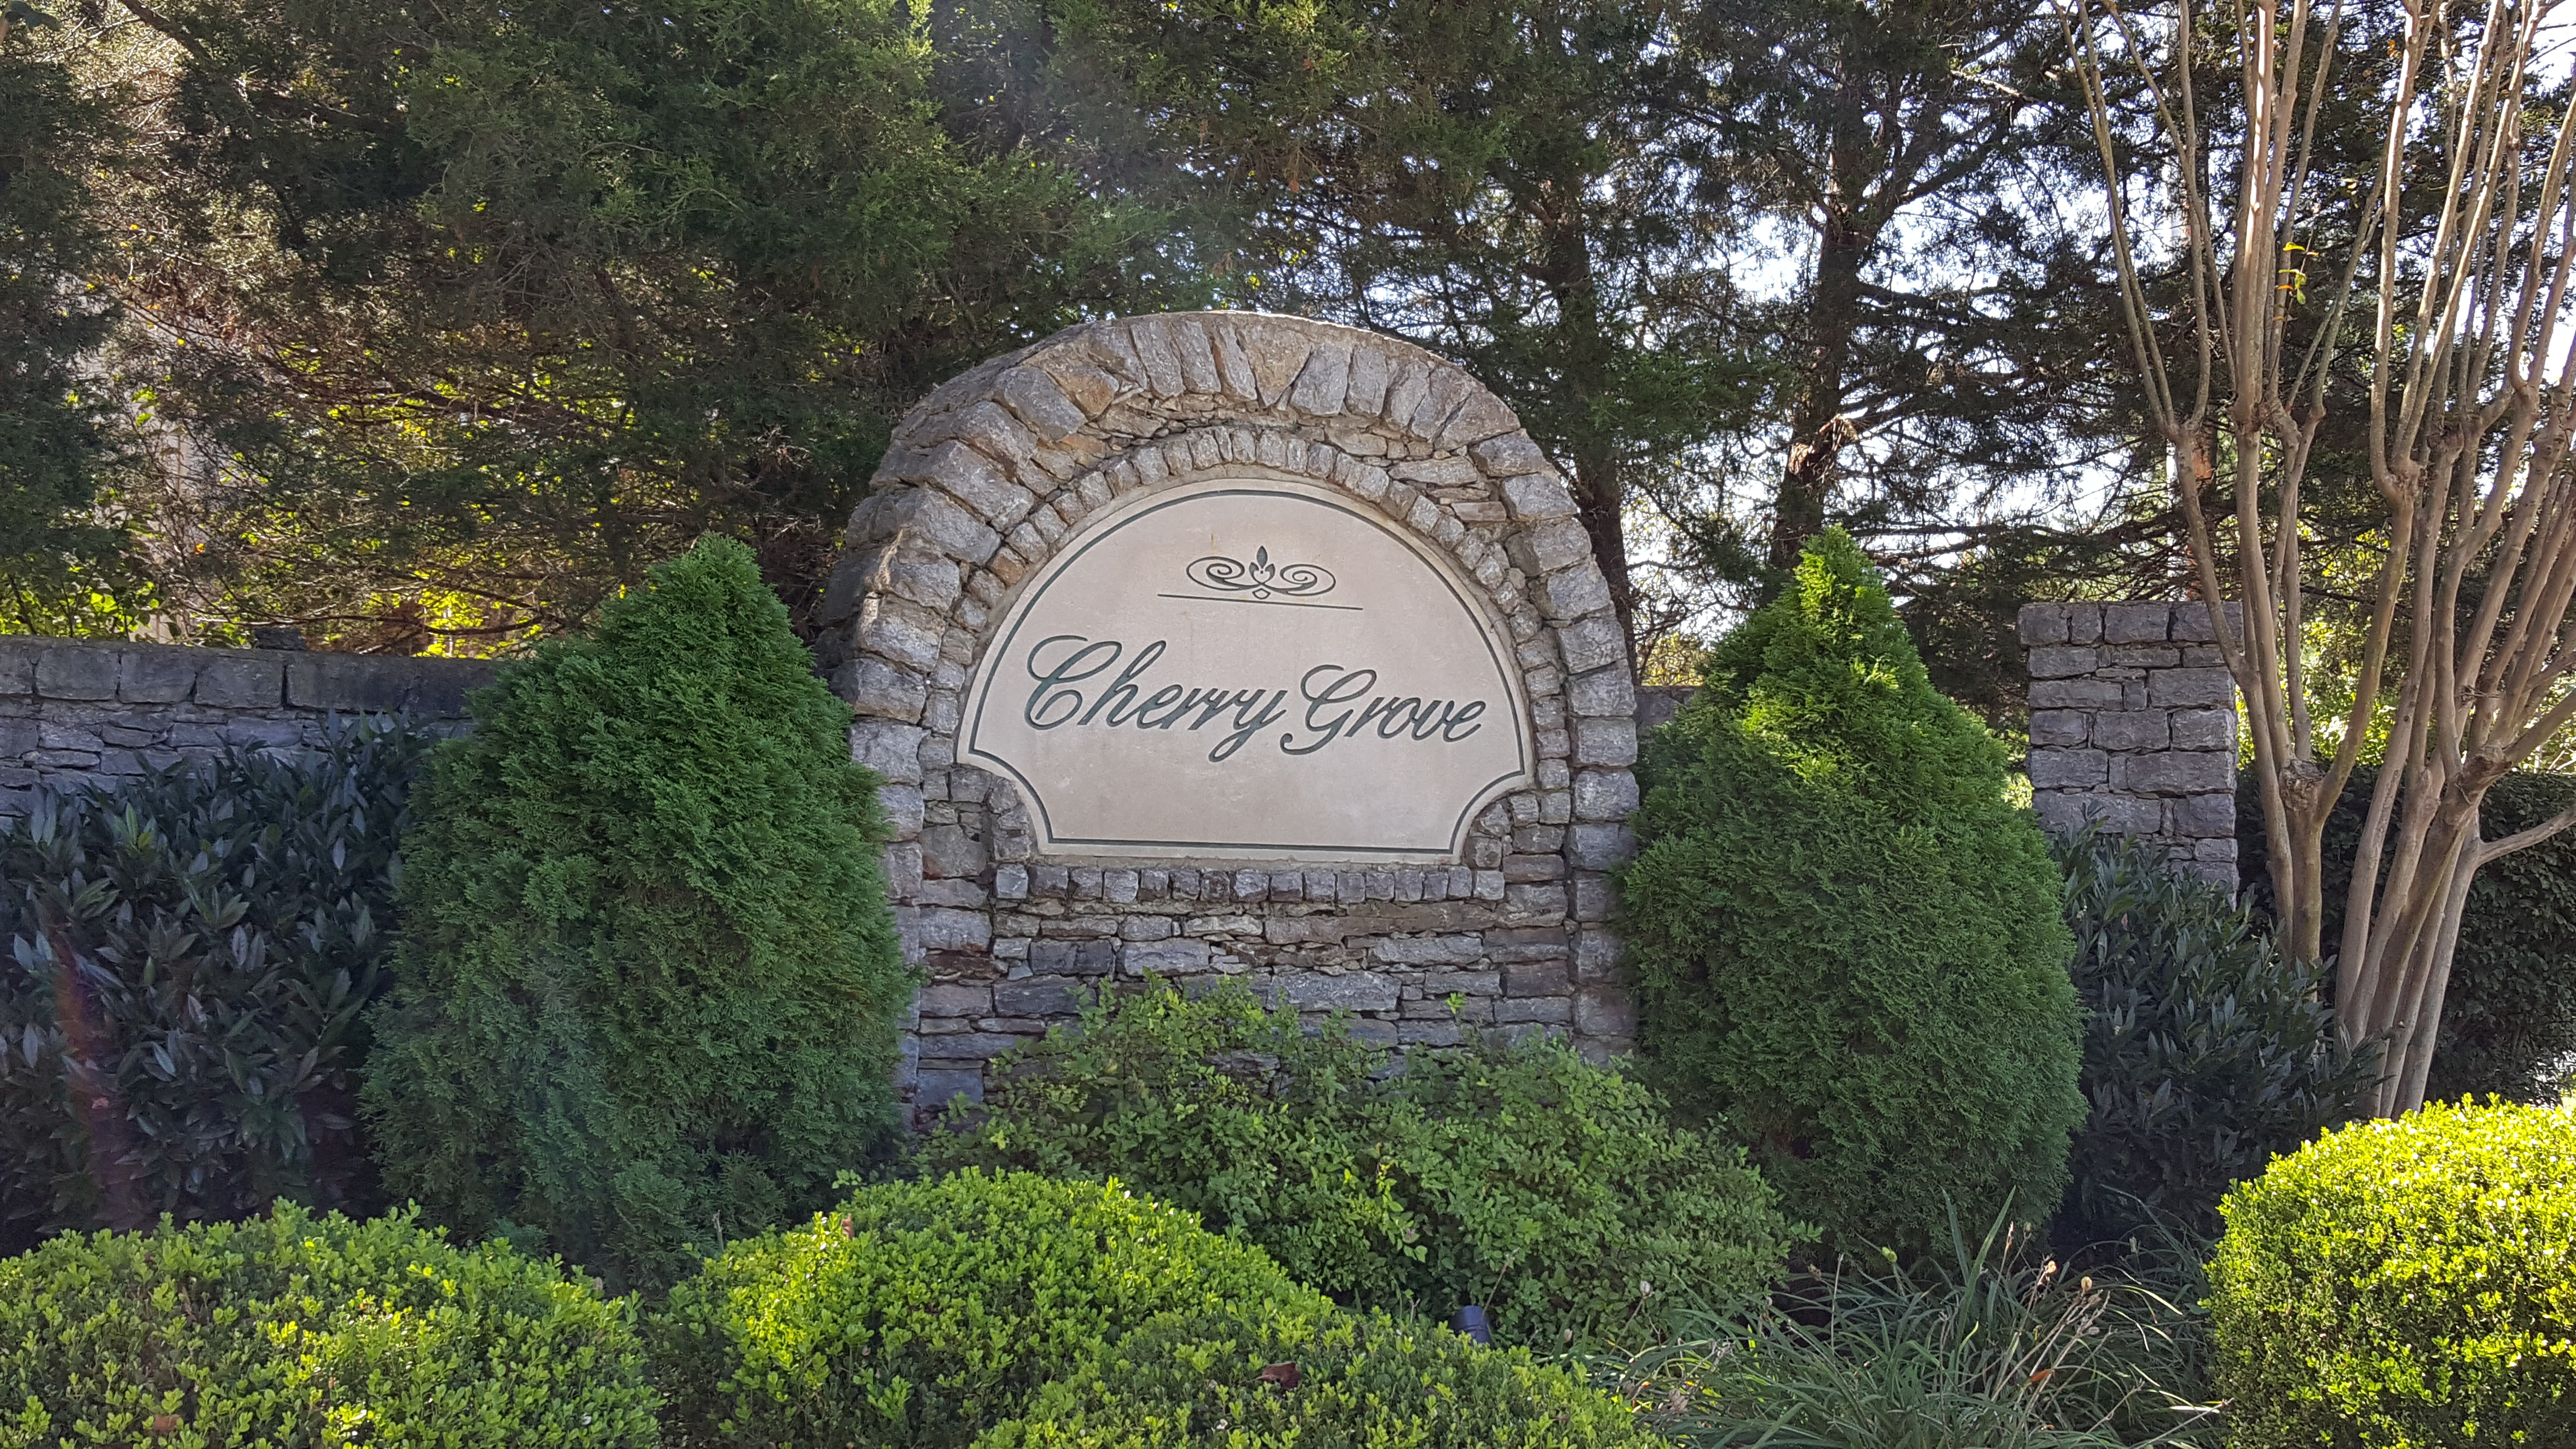 Cherry Grove Subdivision complete list of homes for sale in Spring Hill